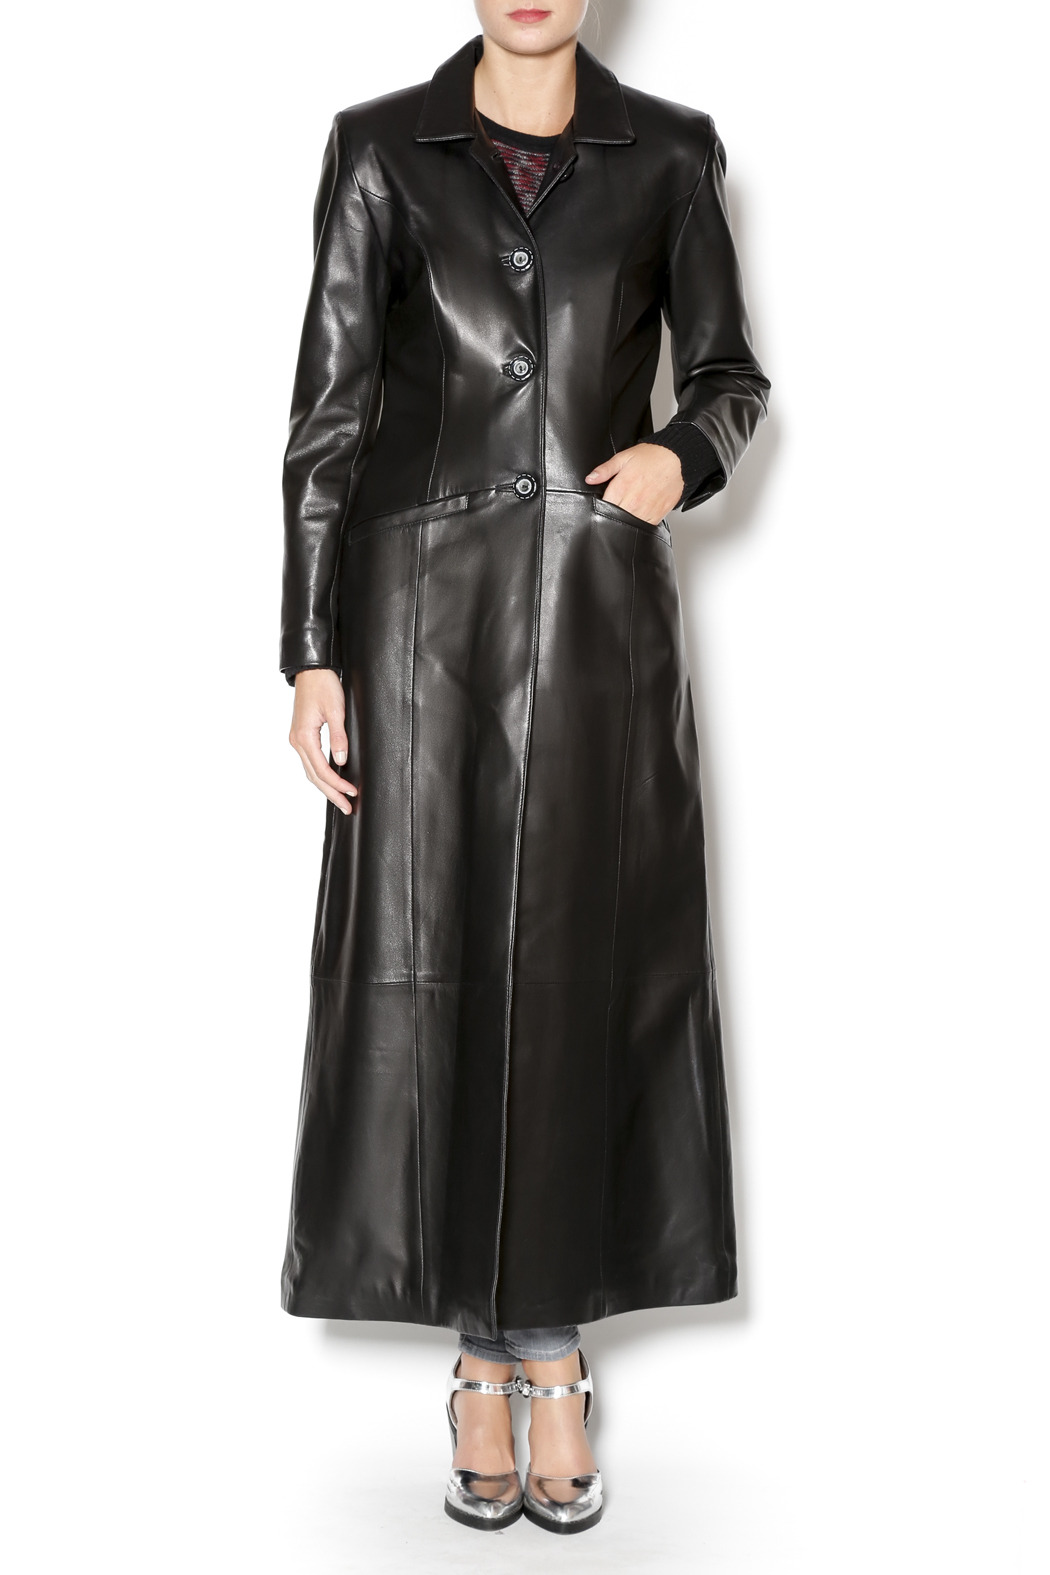 West Coast Leather Leather Trench Coat From San Francisco